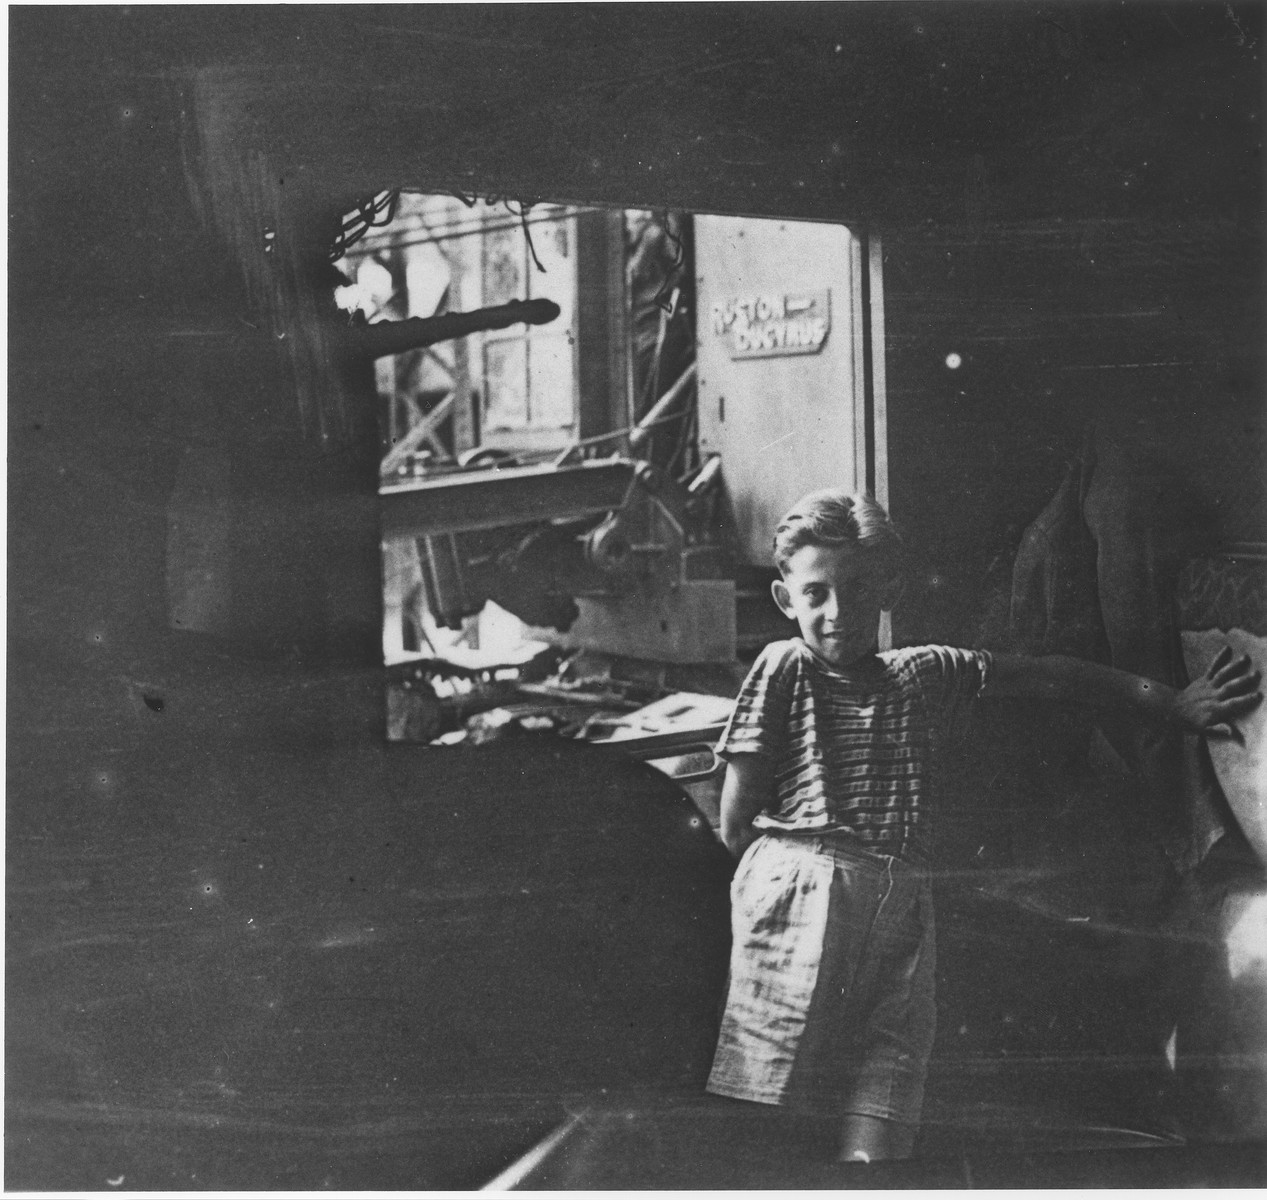 Wolfgang Schaechter poses in a garage in the Enns displaced persons camp.